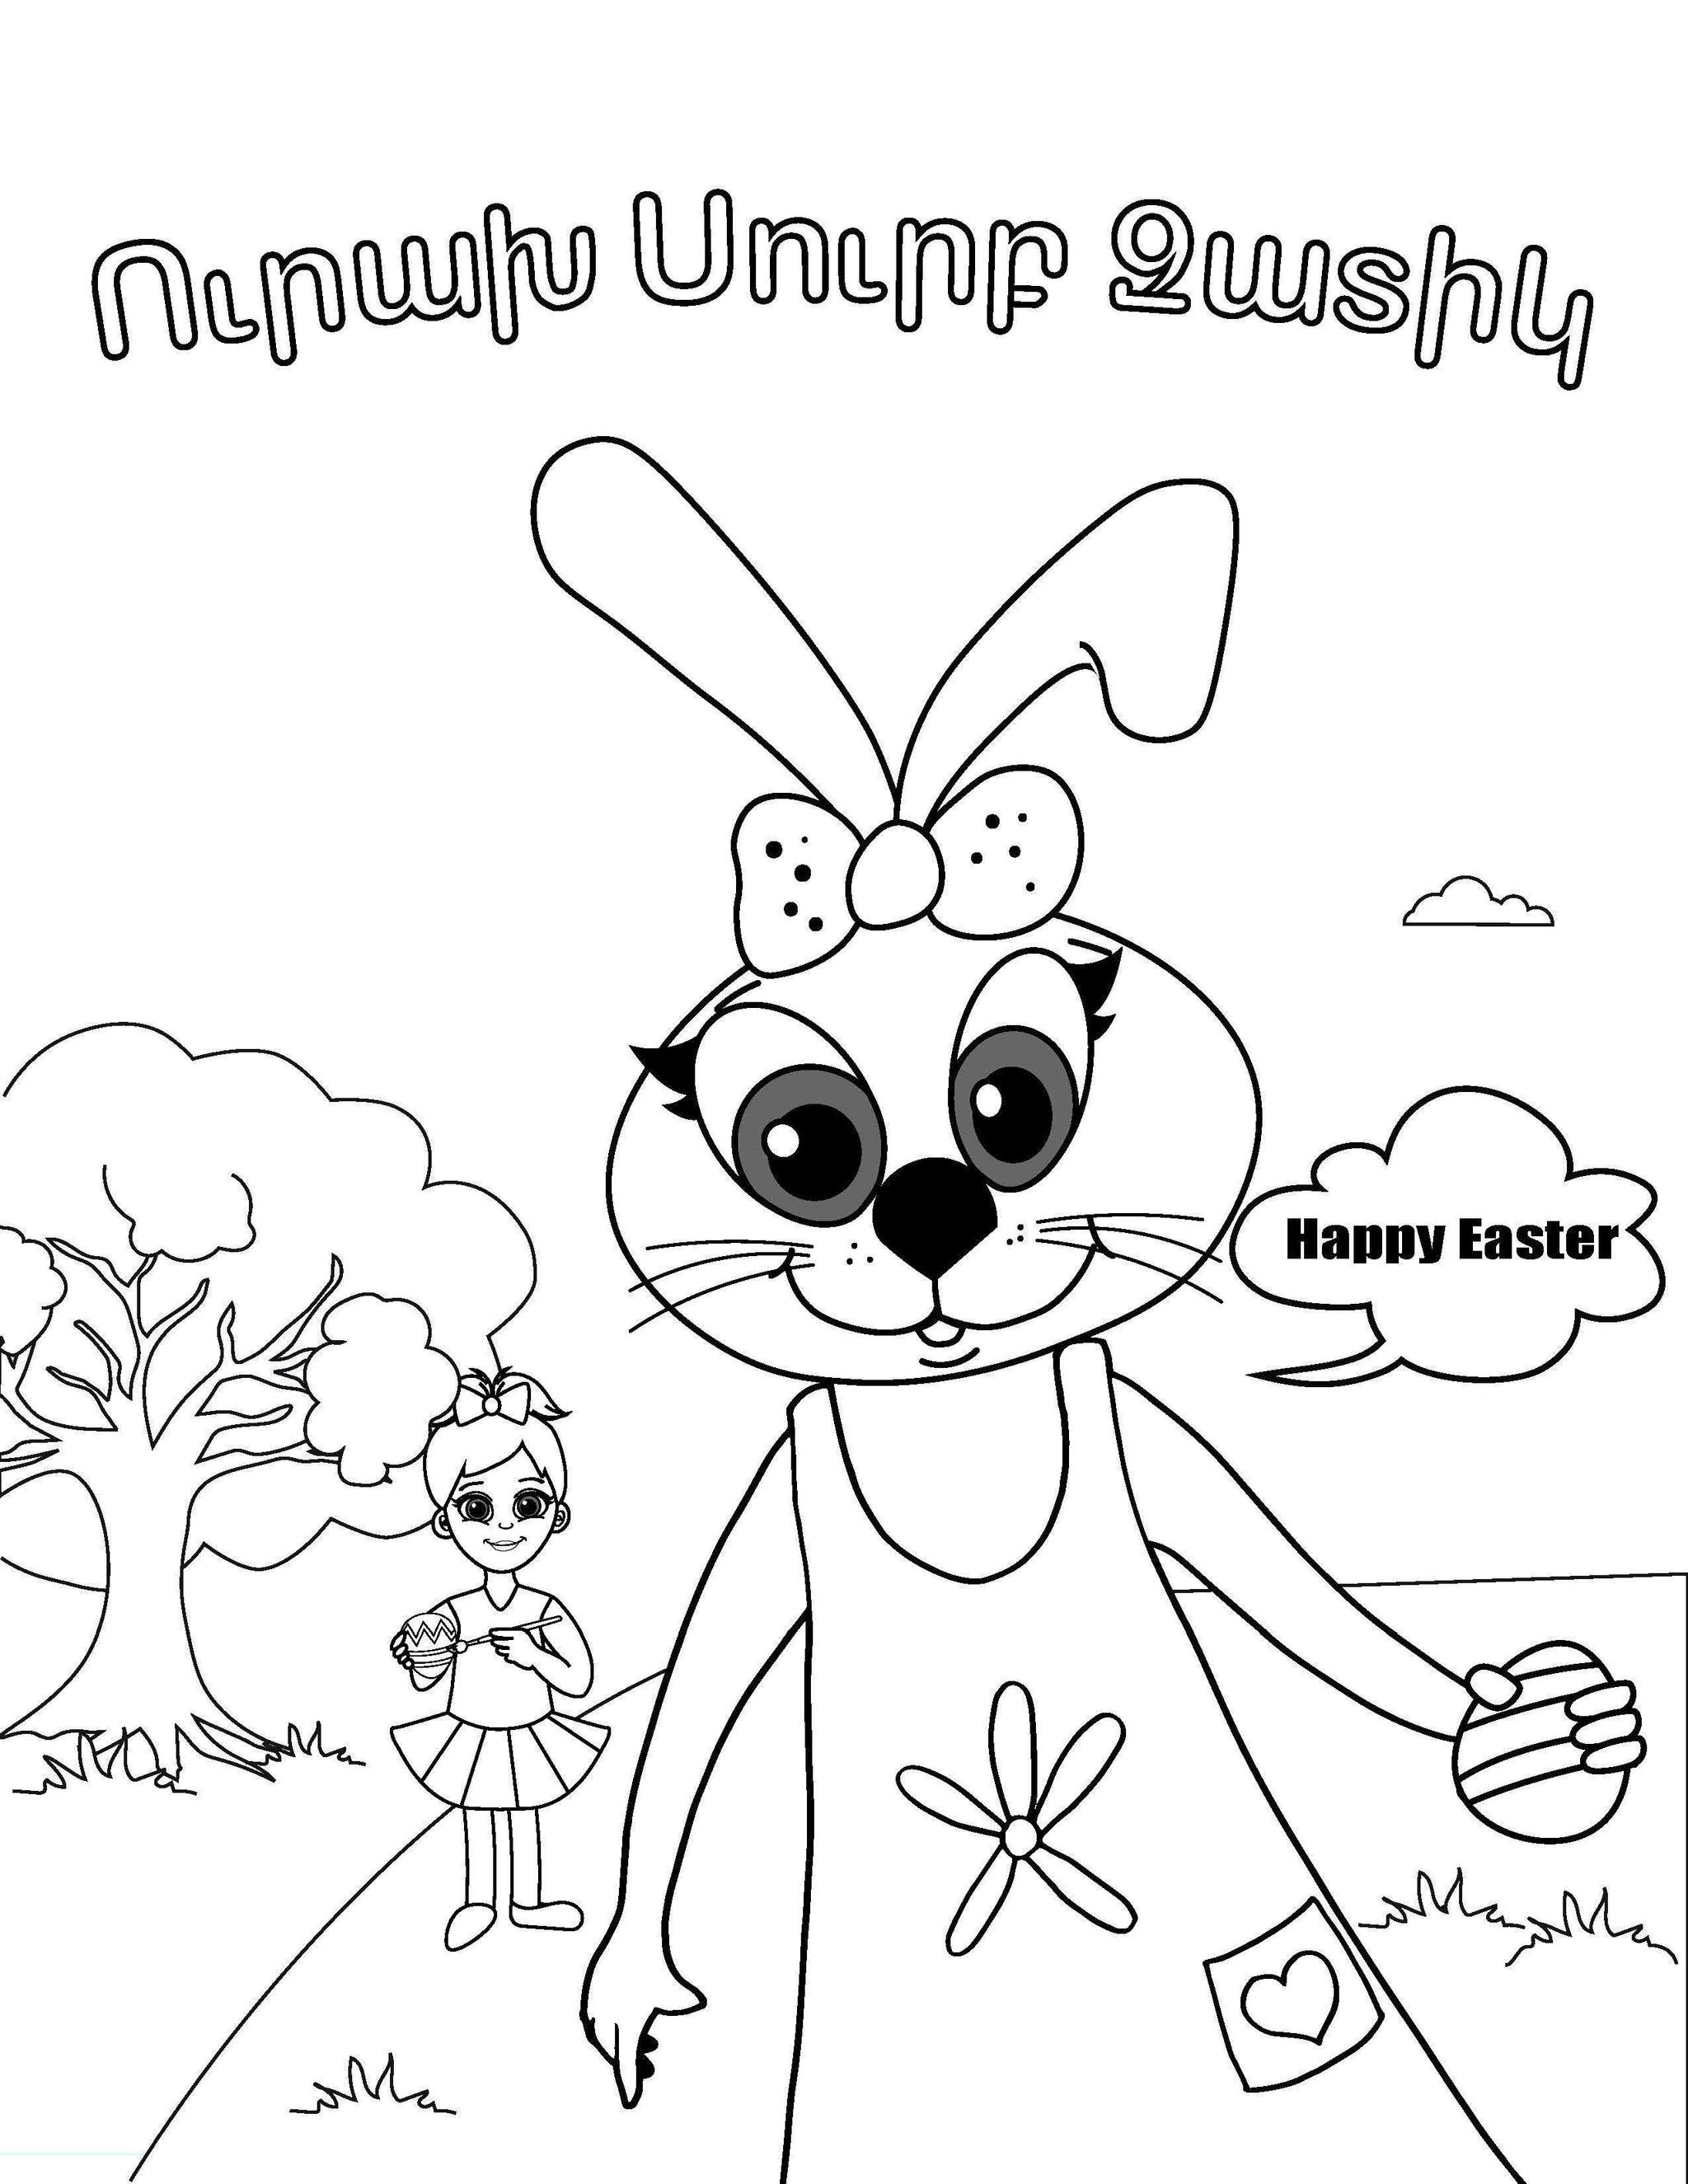 armenia coloring pages - photo#46